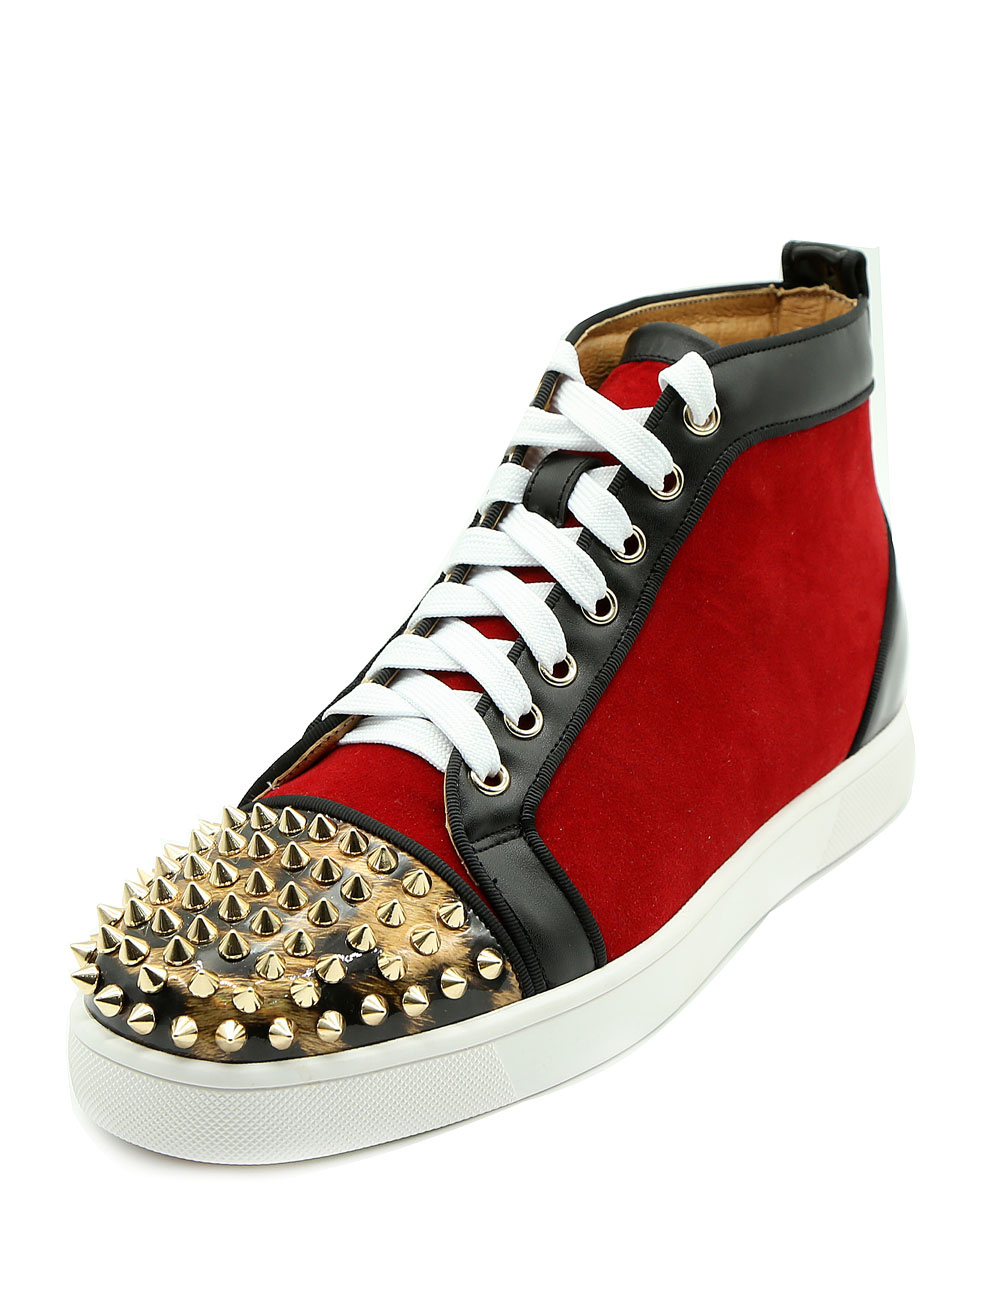 Buy Red Skate Shoes Leather Men's Round Toe Rivets Lace Up High Top Sneakers for $94.49 in Milanoo store